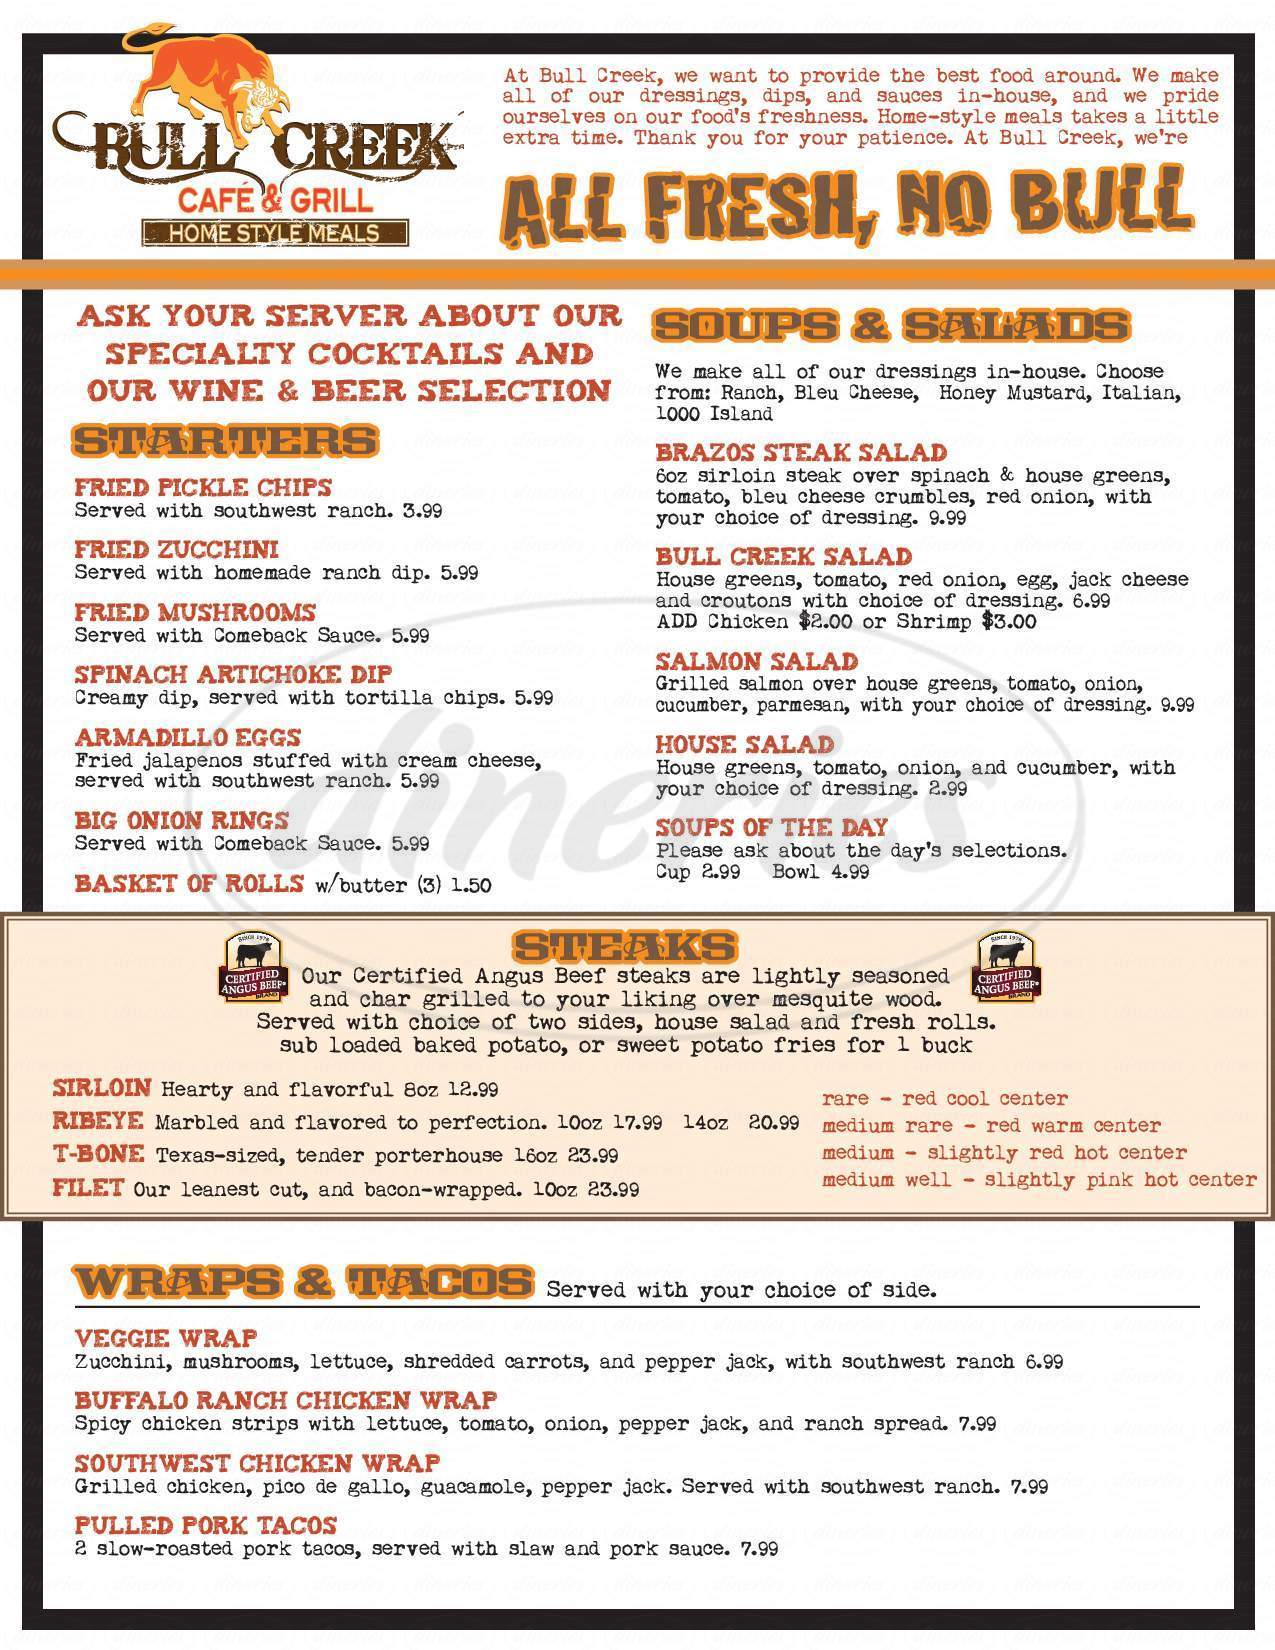 menu for Bull Creek Cafe & Grill